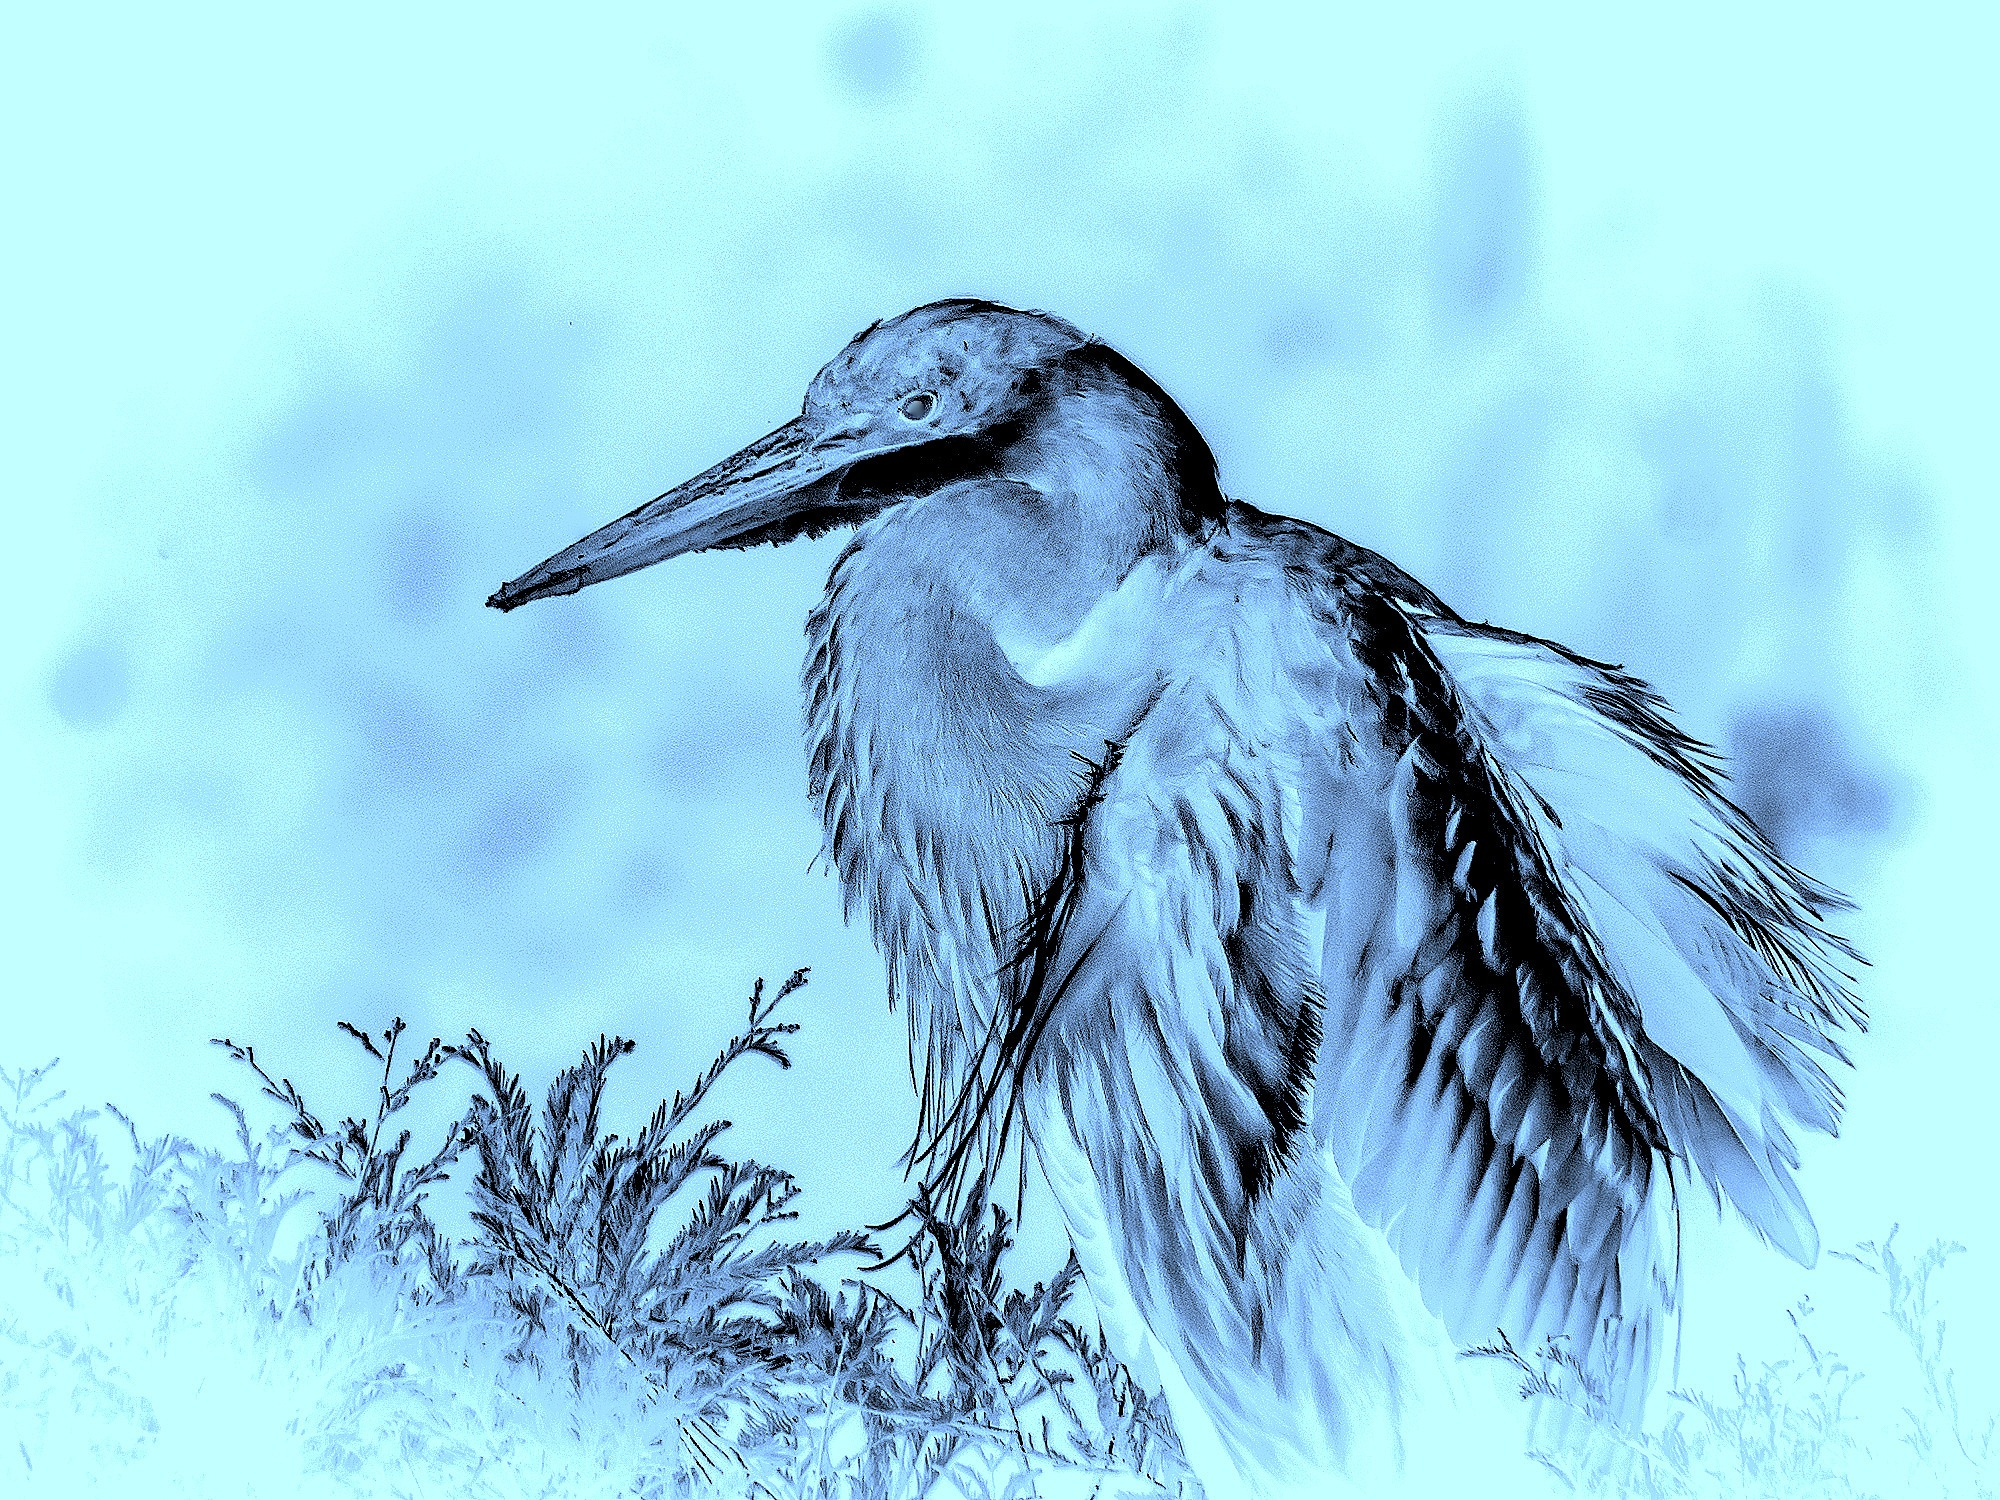 Great Blue Heron by Greg Towle